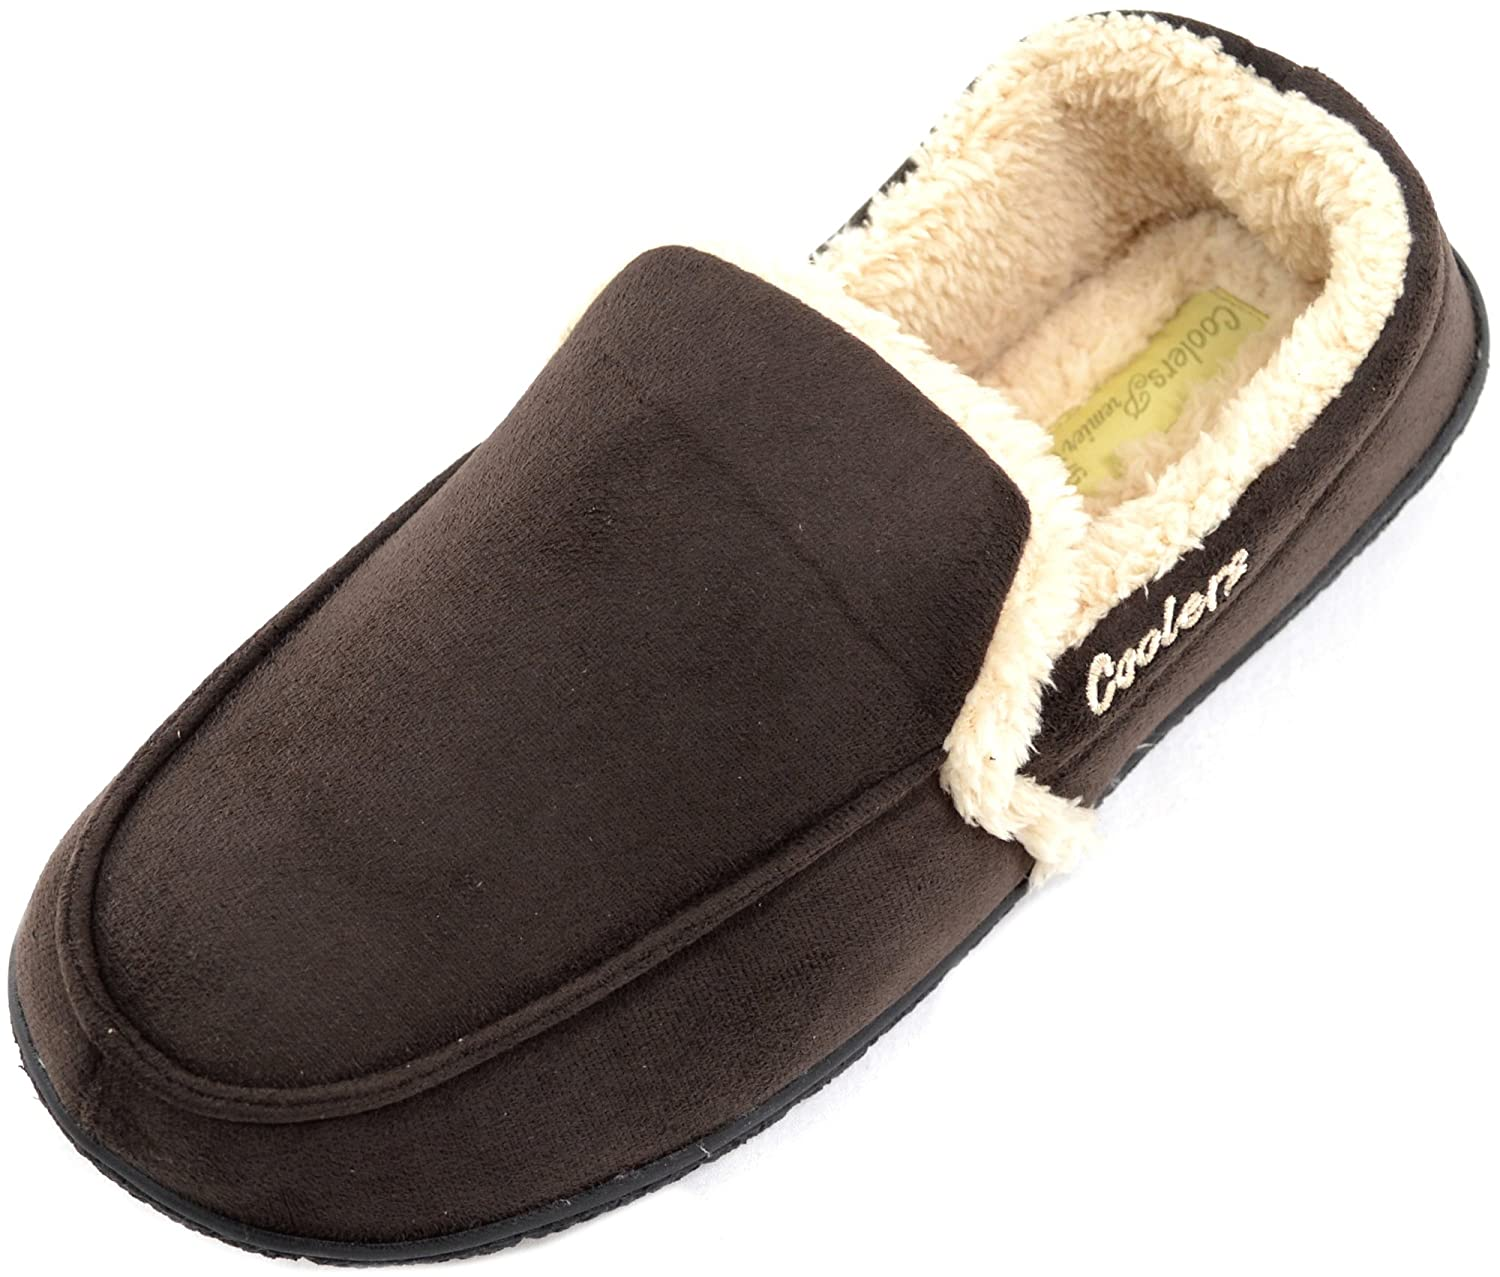 bf62fce87 Mens Soft Fleece Slippers / Indoor Shoes with Warm Faux Fur Inners:  Amazon.co.uk: Shoes & Bags